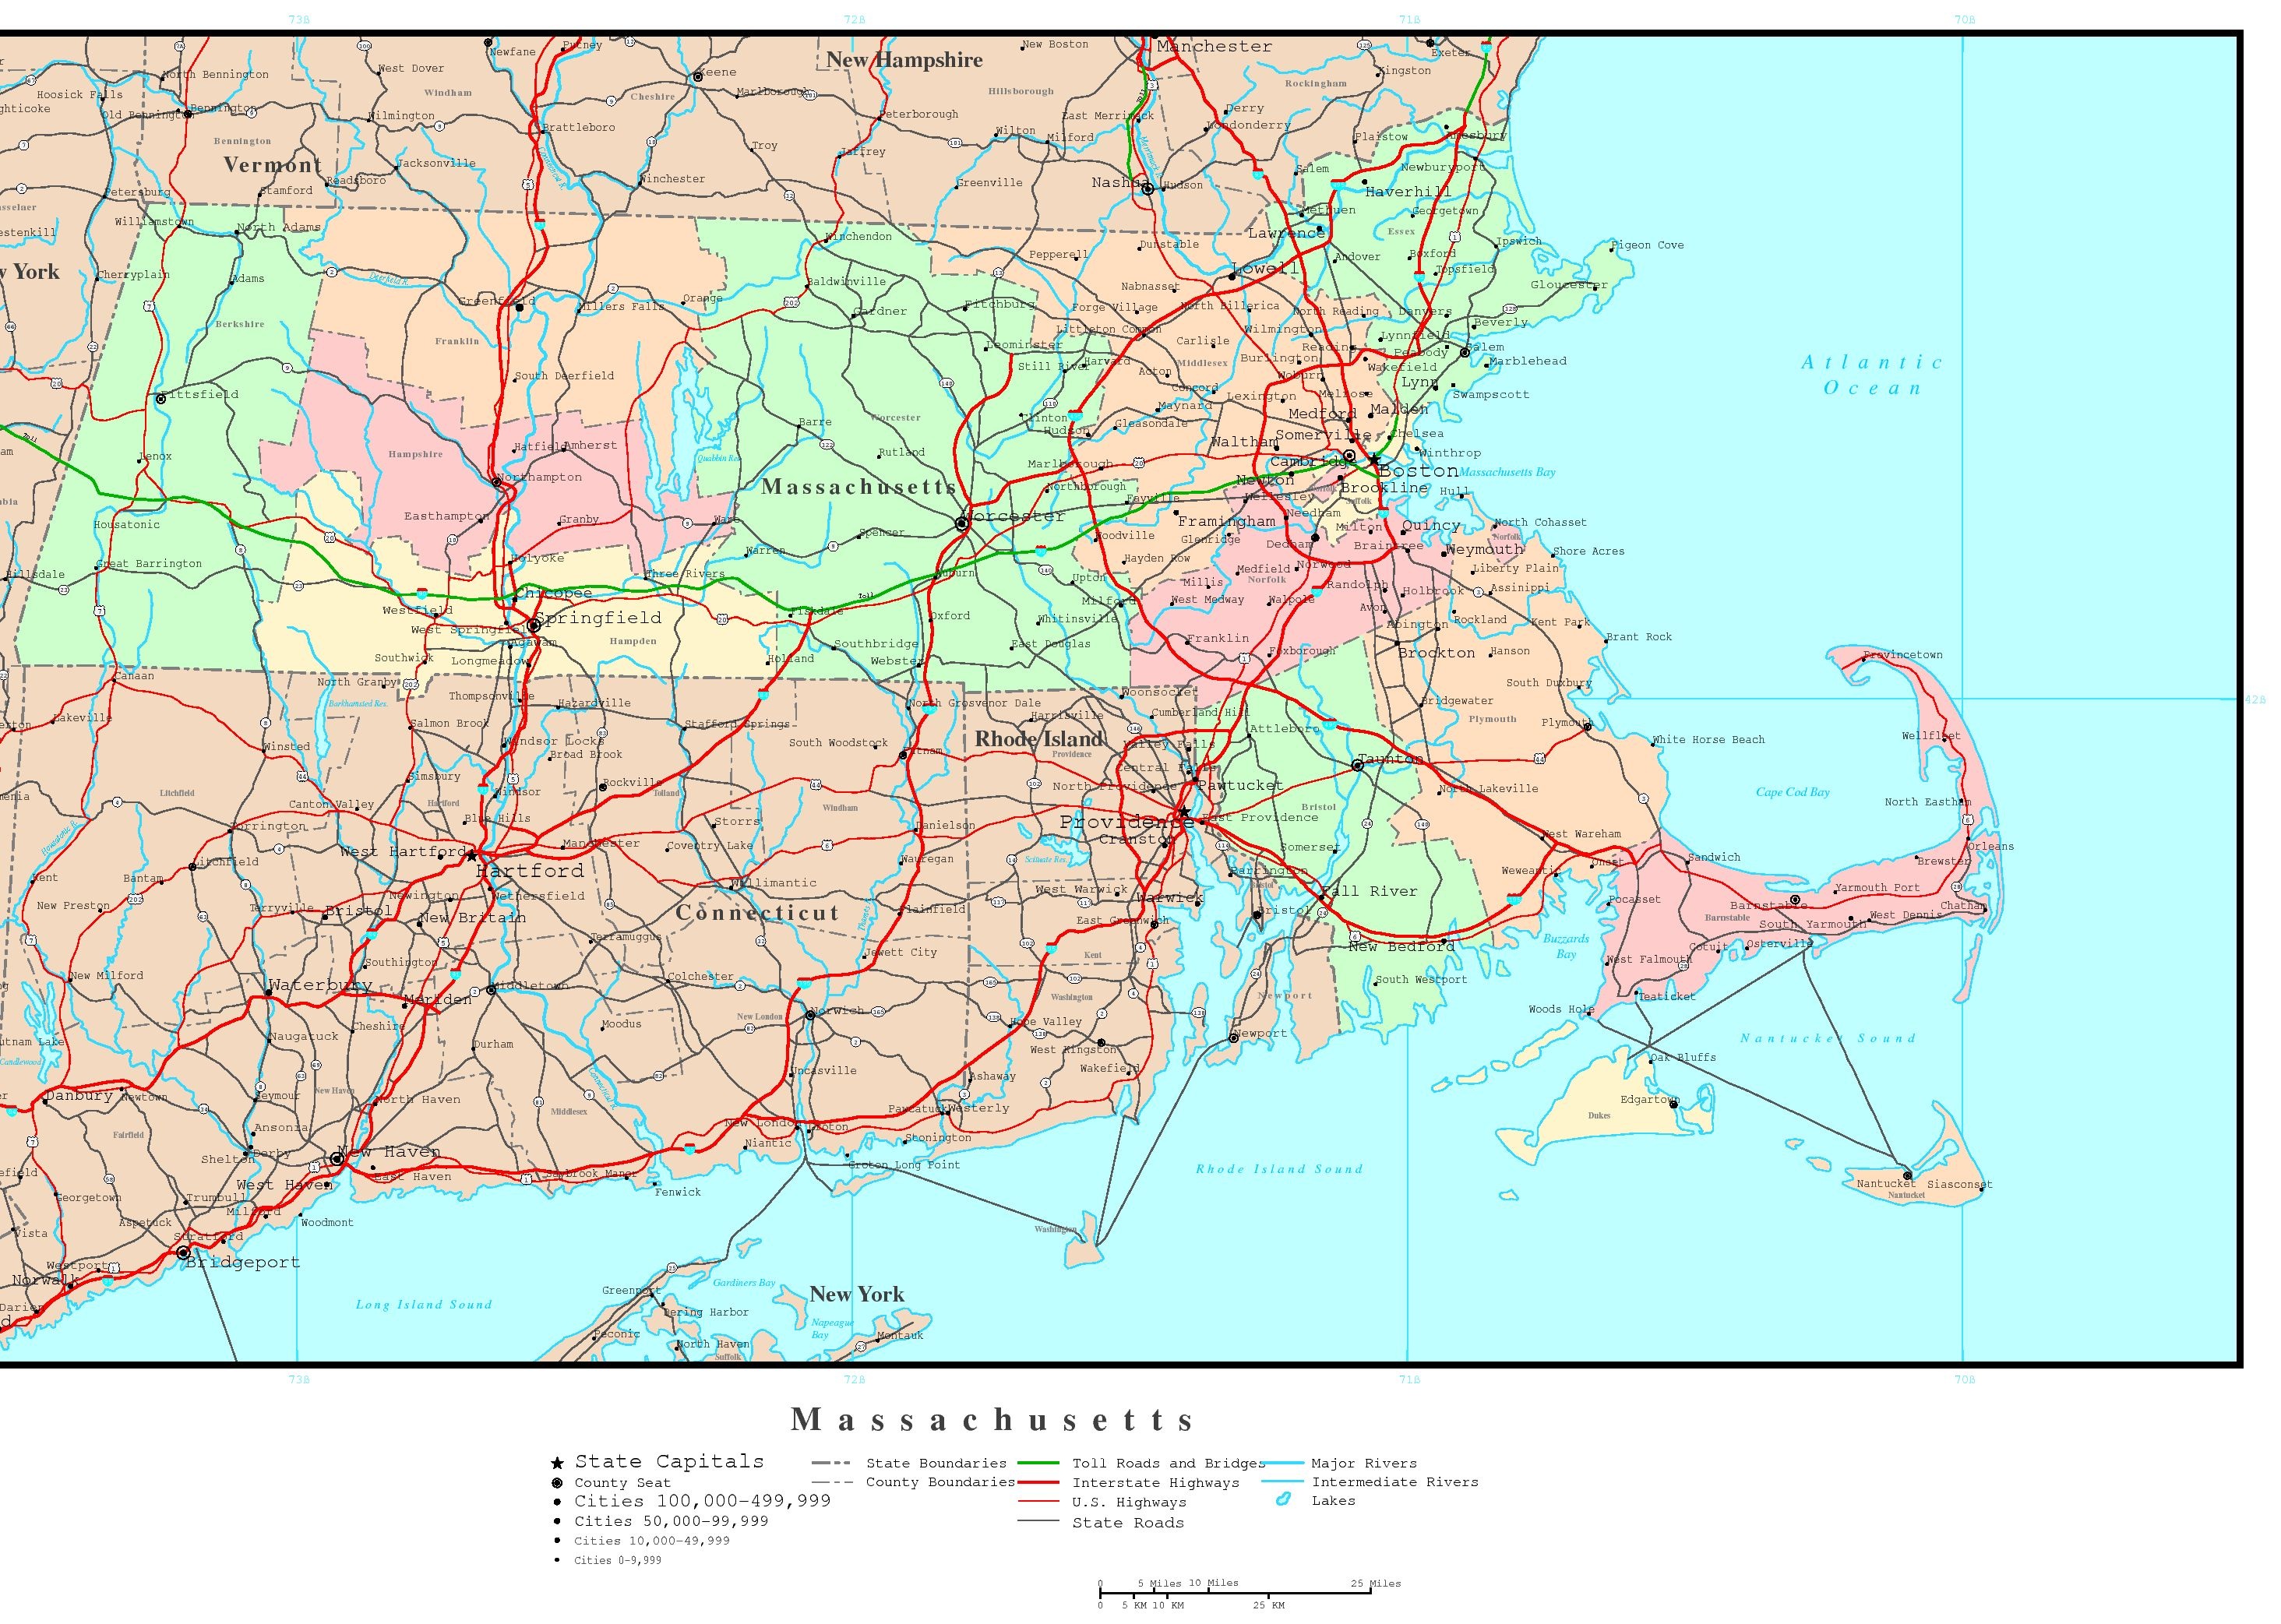 Massachusetts Political Map - High resolution us road map